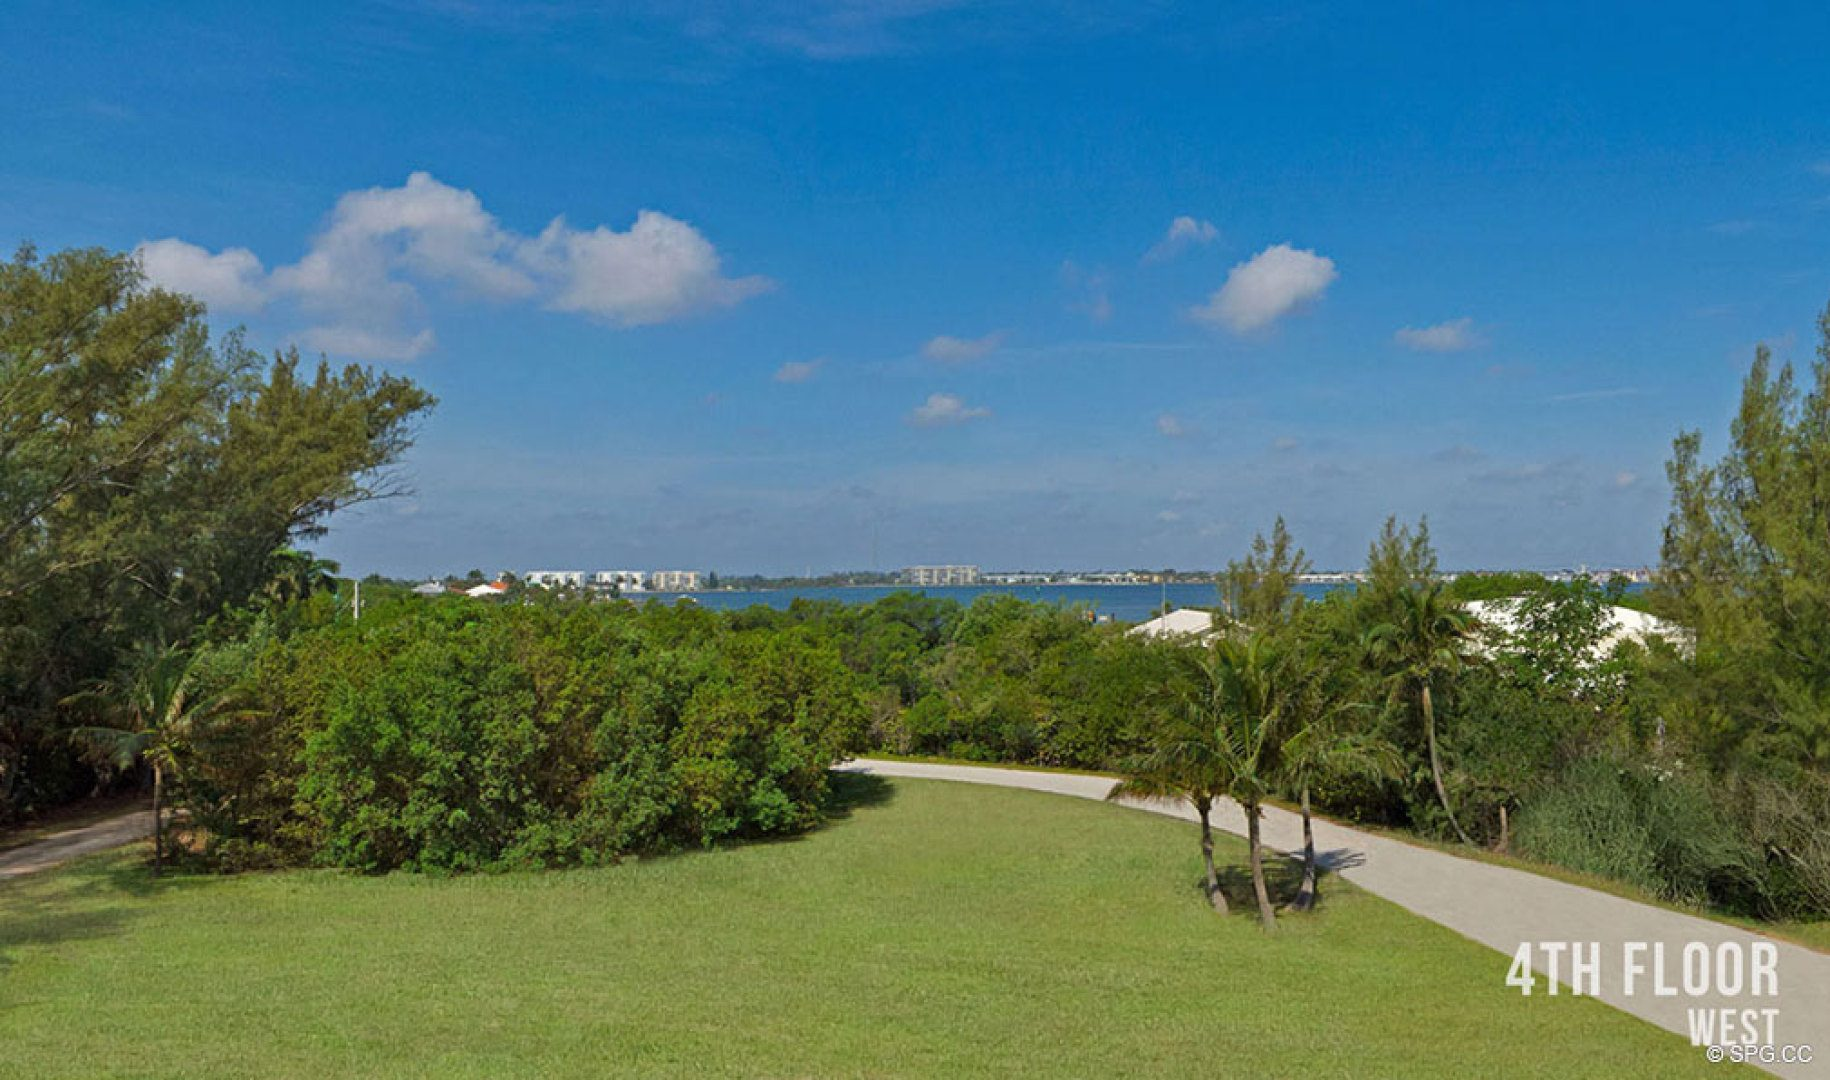 Fourth Floor Western Views from 5000 North Ocean, Luxury Oceanfront Condos in Riviera Beach